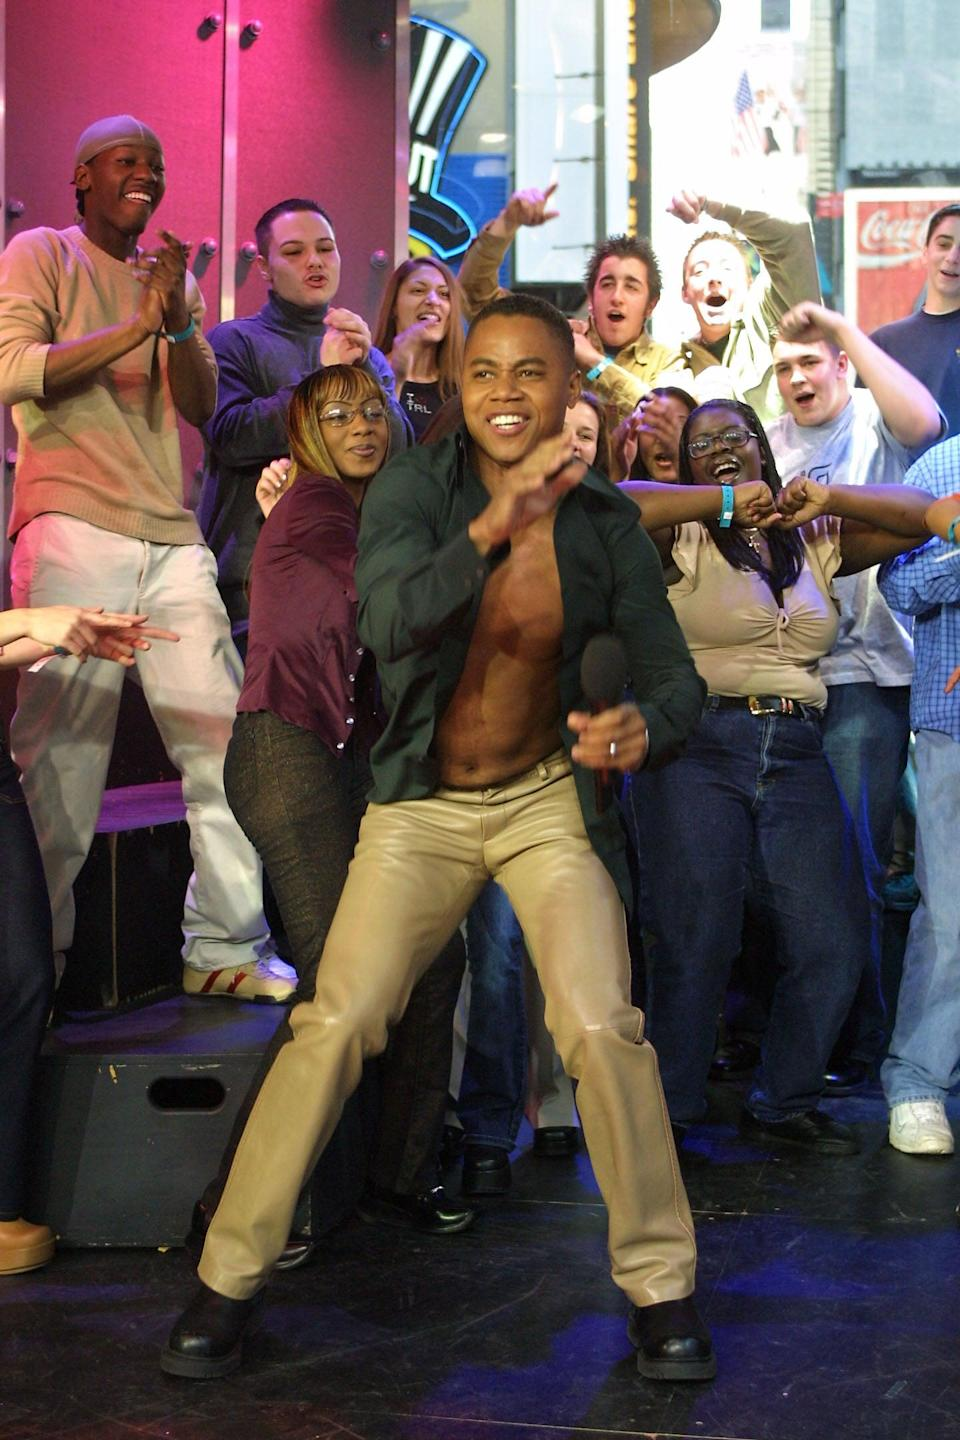 <p>Cuba Gooding Jr. busted a move on <b>TRL</b> in 2002.</p>